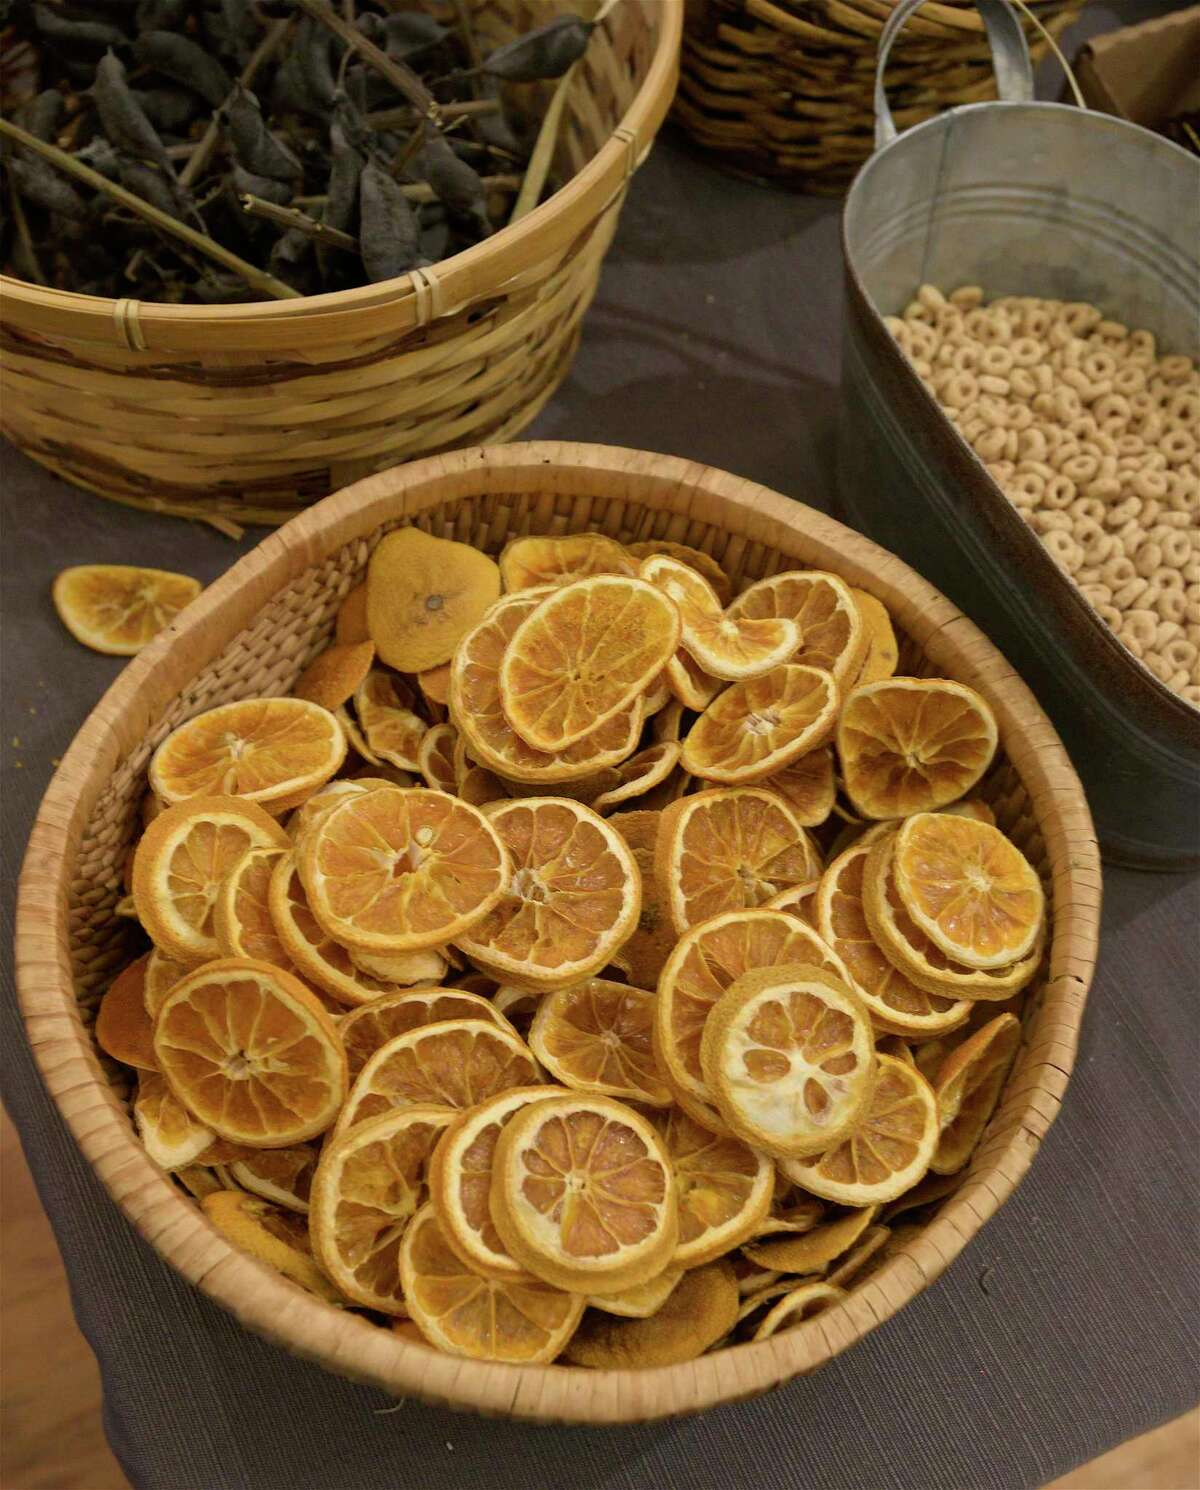 Orange slices and other materials were used at a Woodcock Nature Center wreath building workshop on Friday evening.